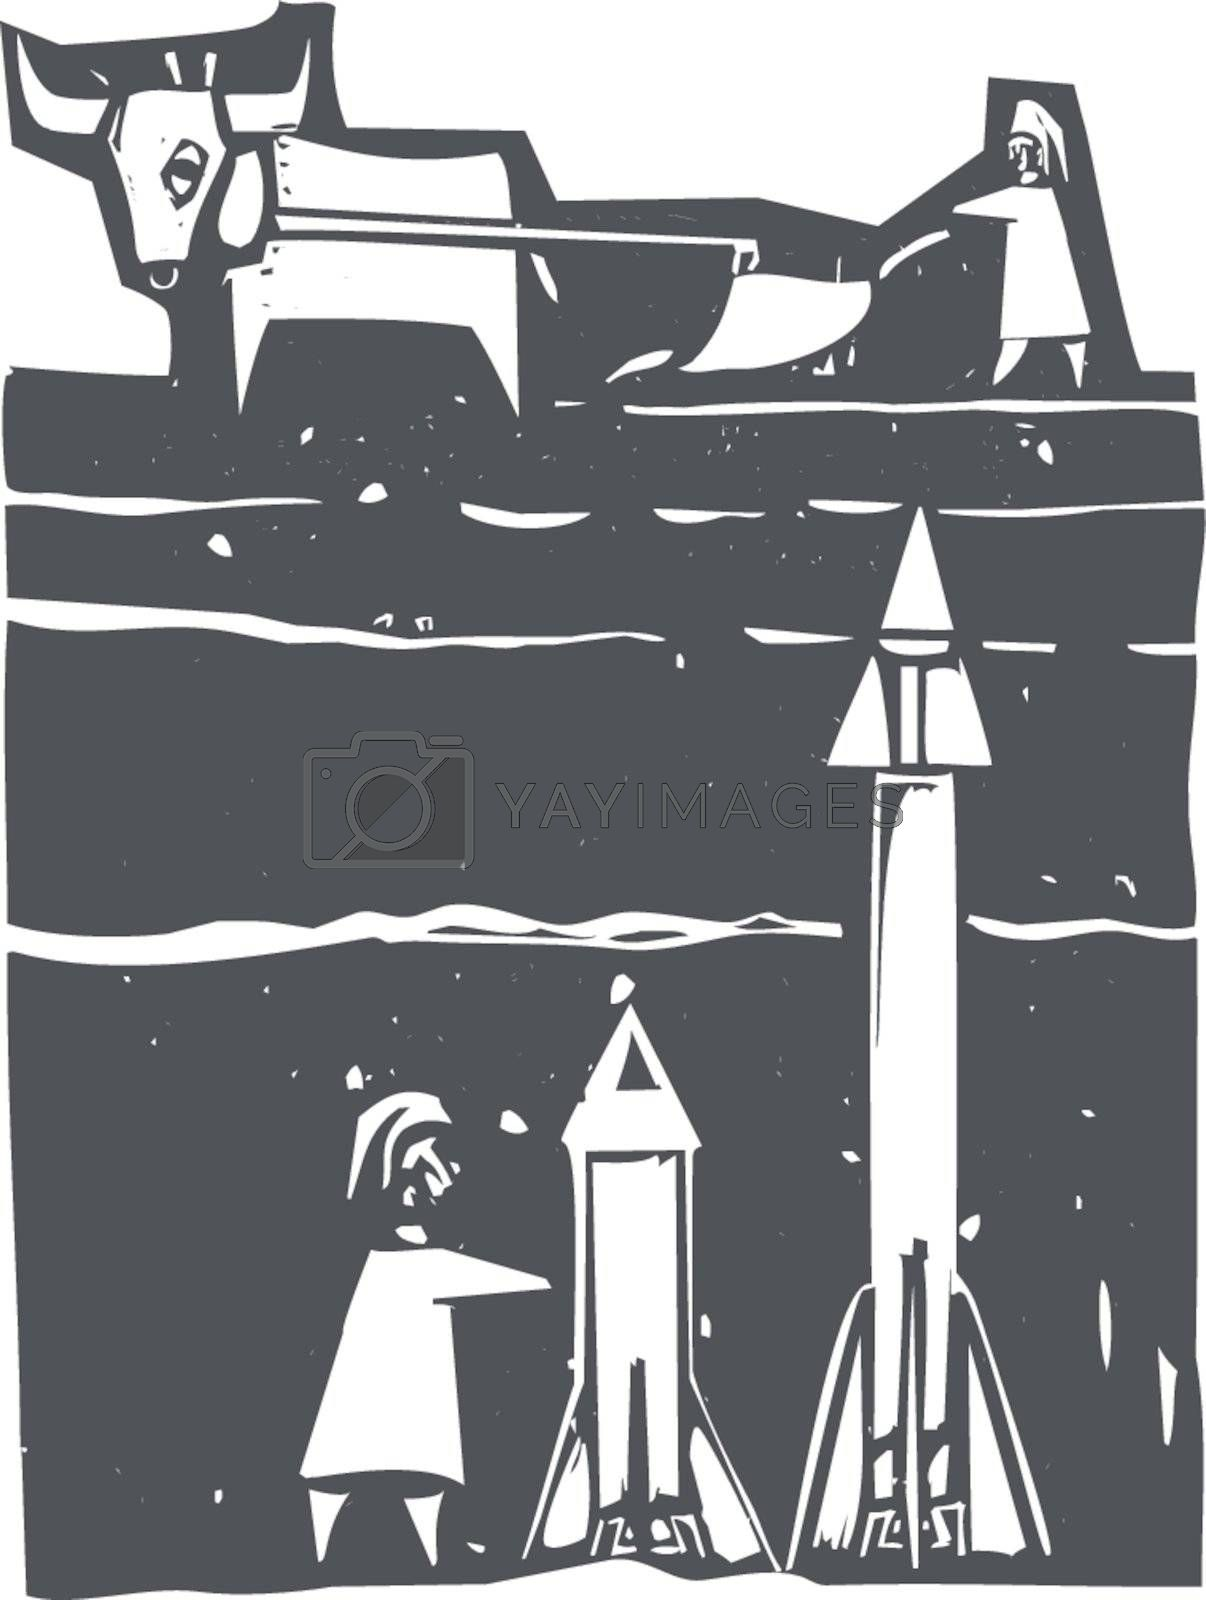 Woodcut style image of missiles being set up beneath a farm field